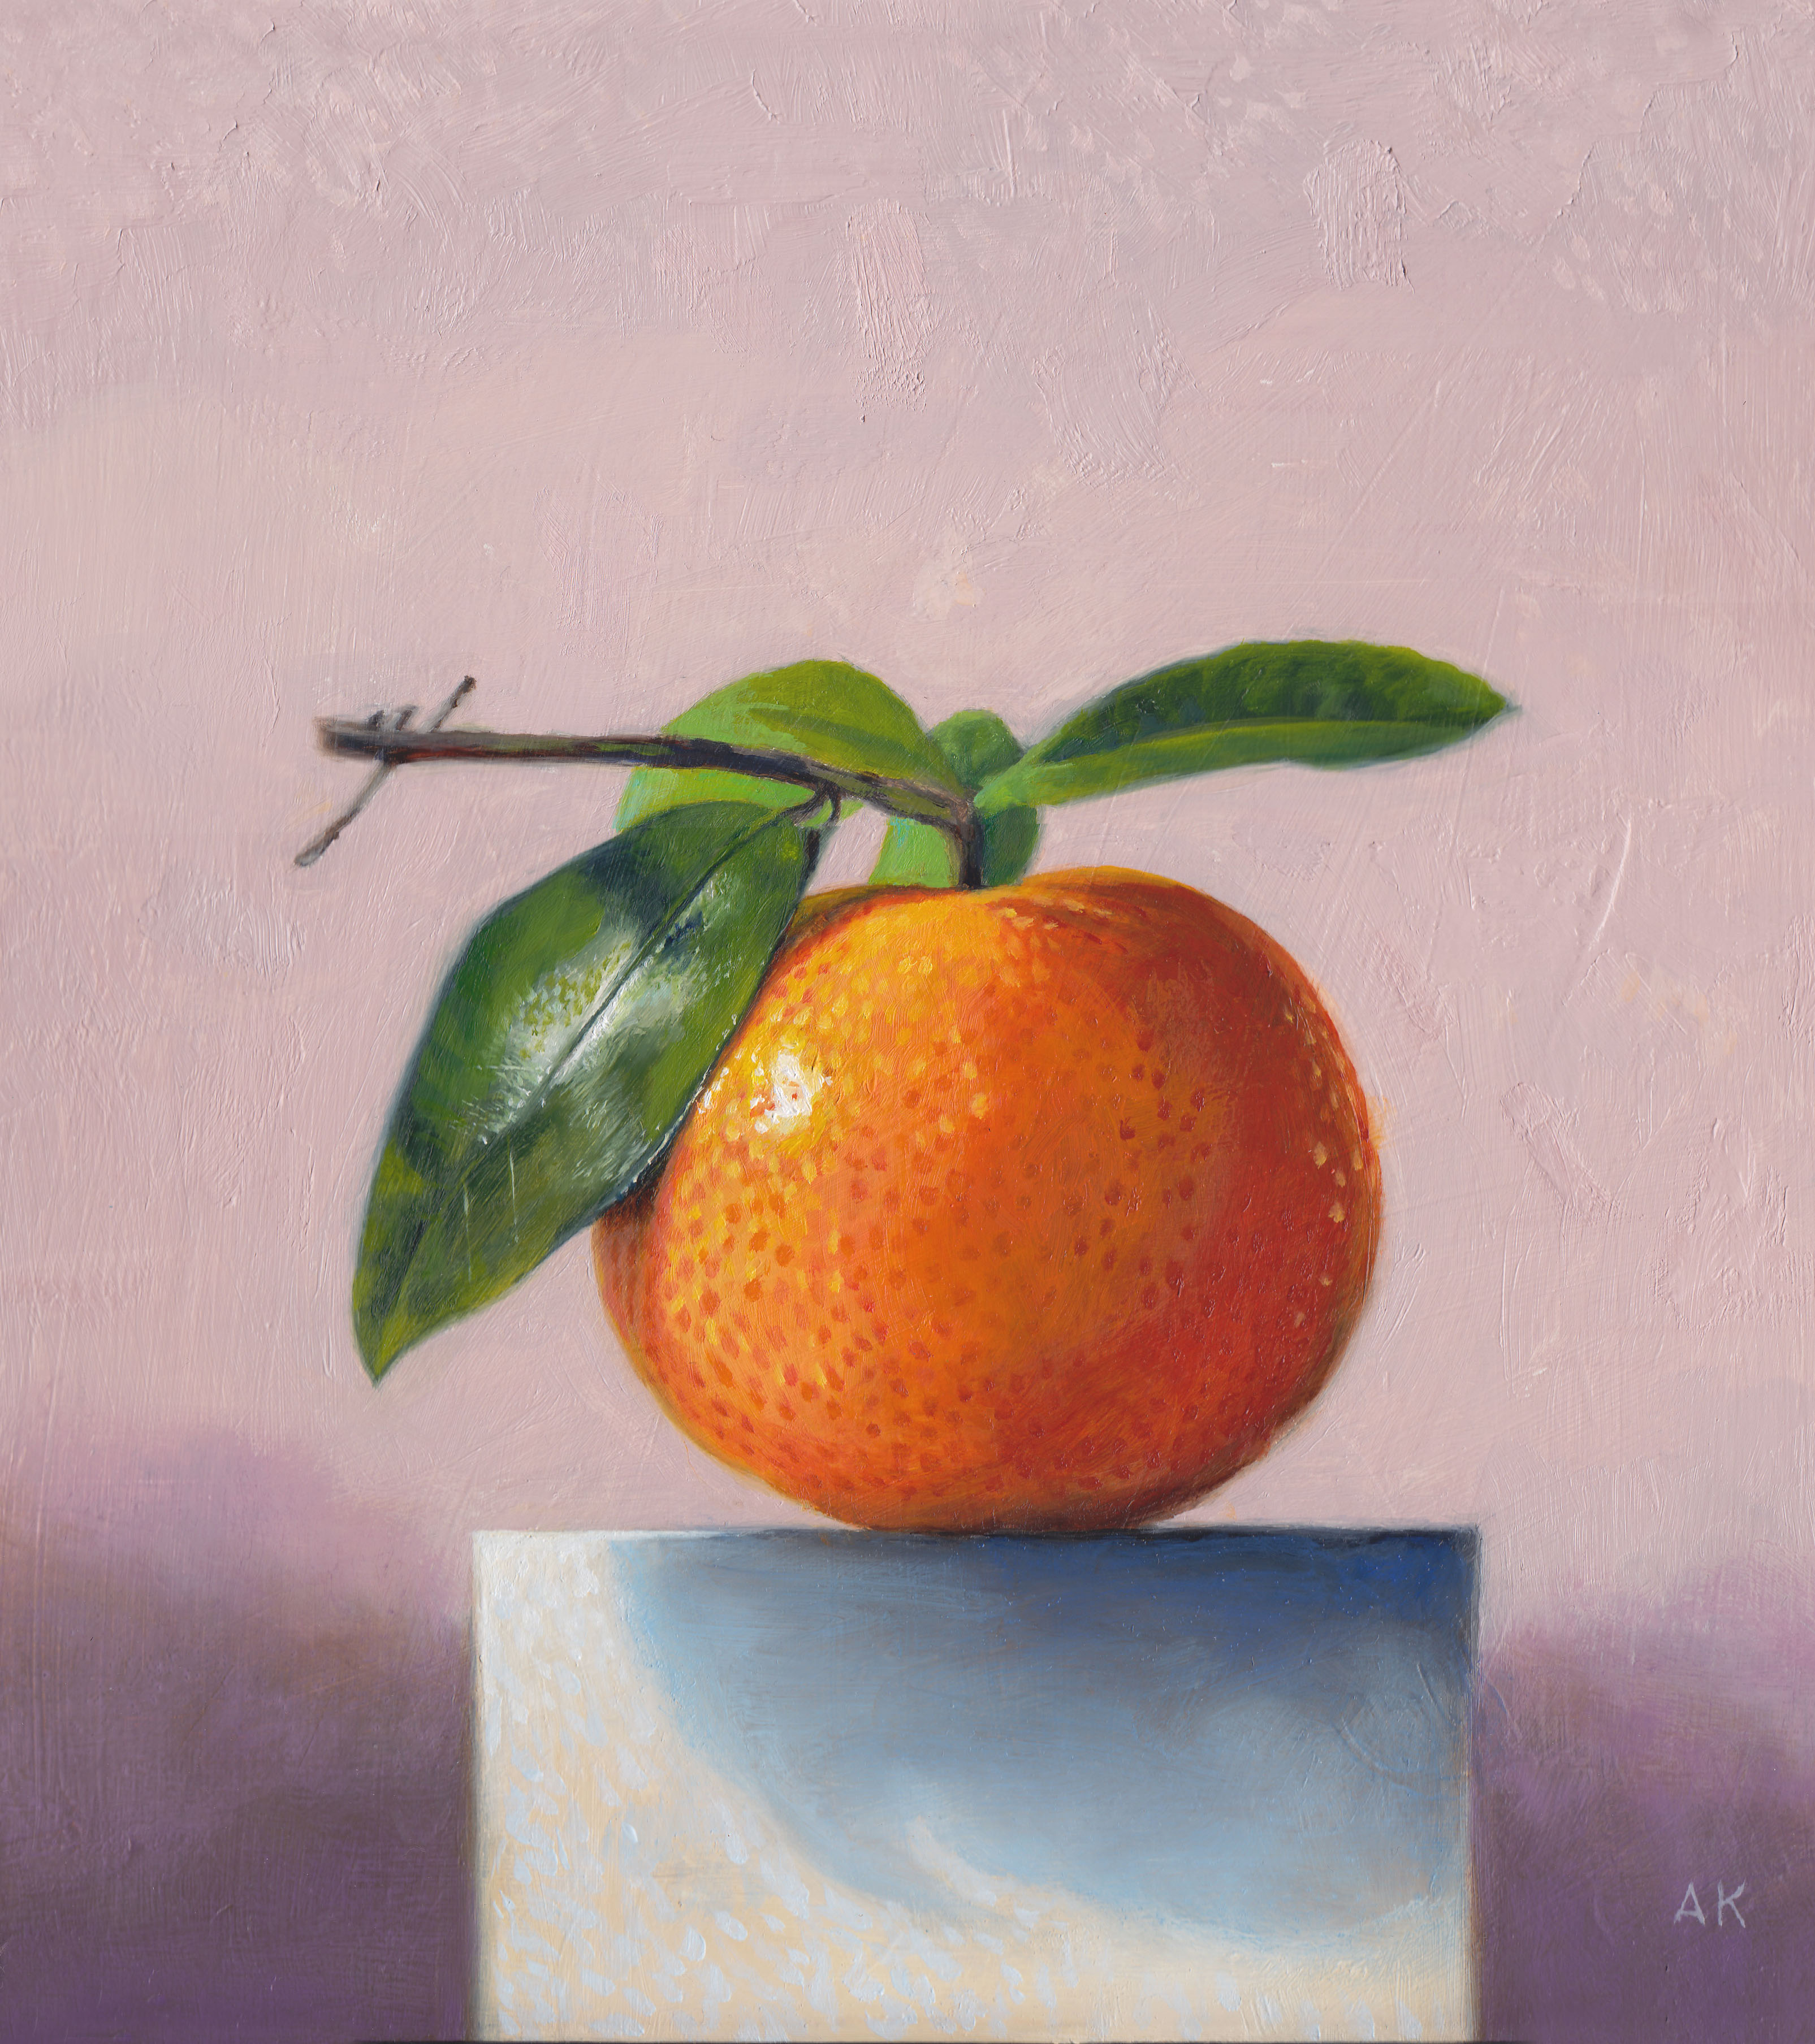 Oil painting of a tangerine by Toronto artist Alan King